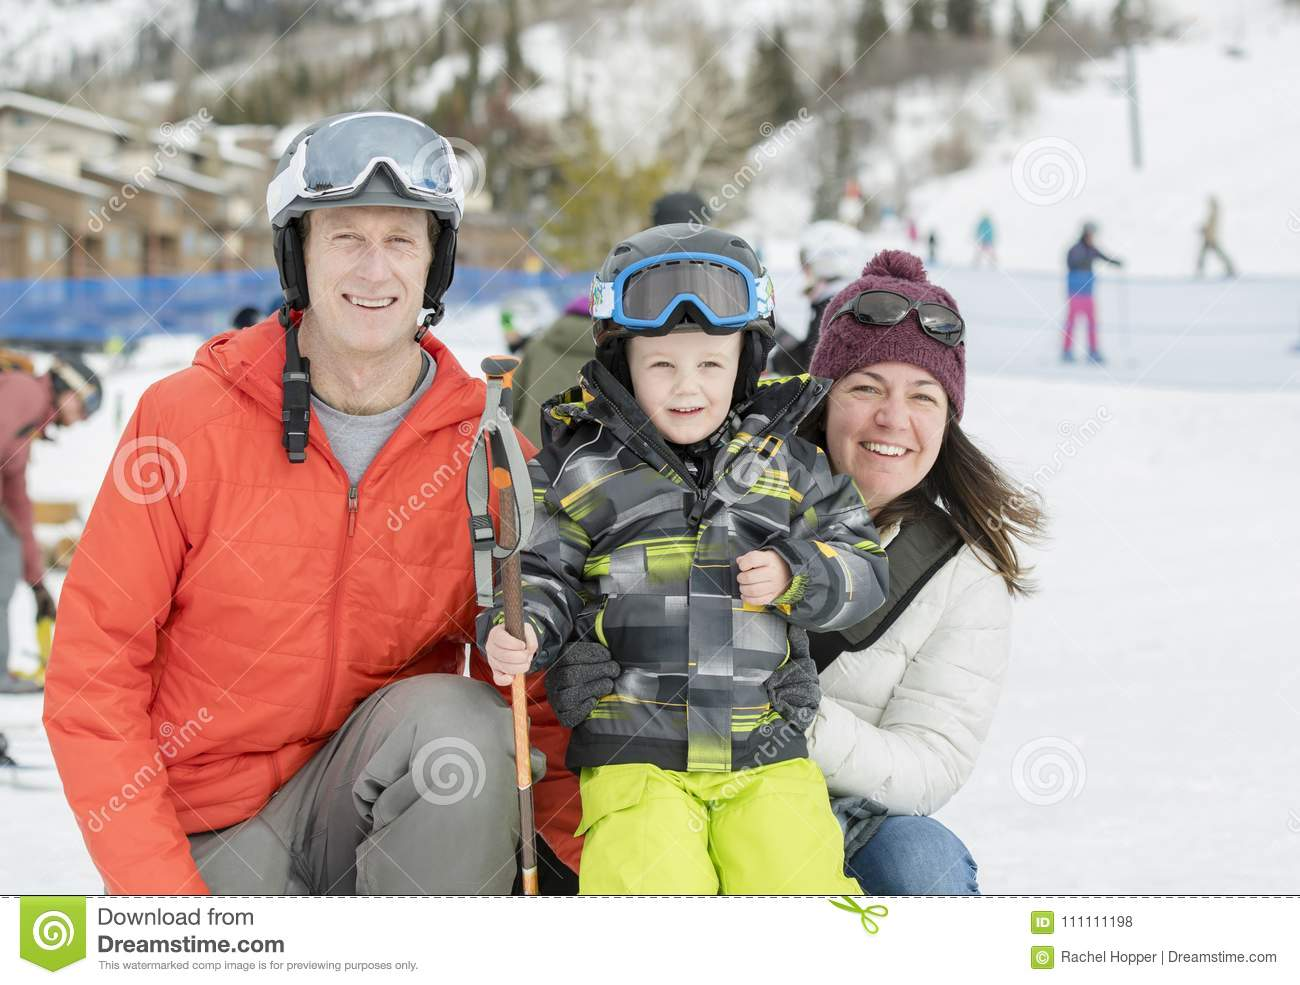 c17202dfa8e4 Family Ready To Ski With A Toddler Boy Dressed In All Safety Gear ...